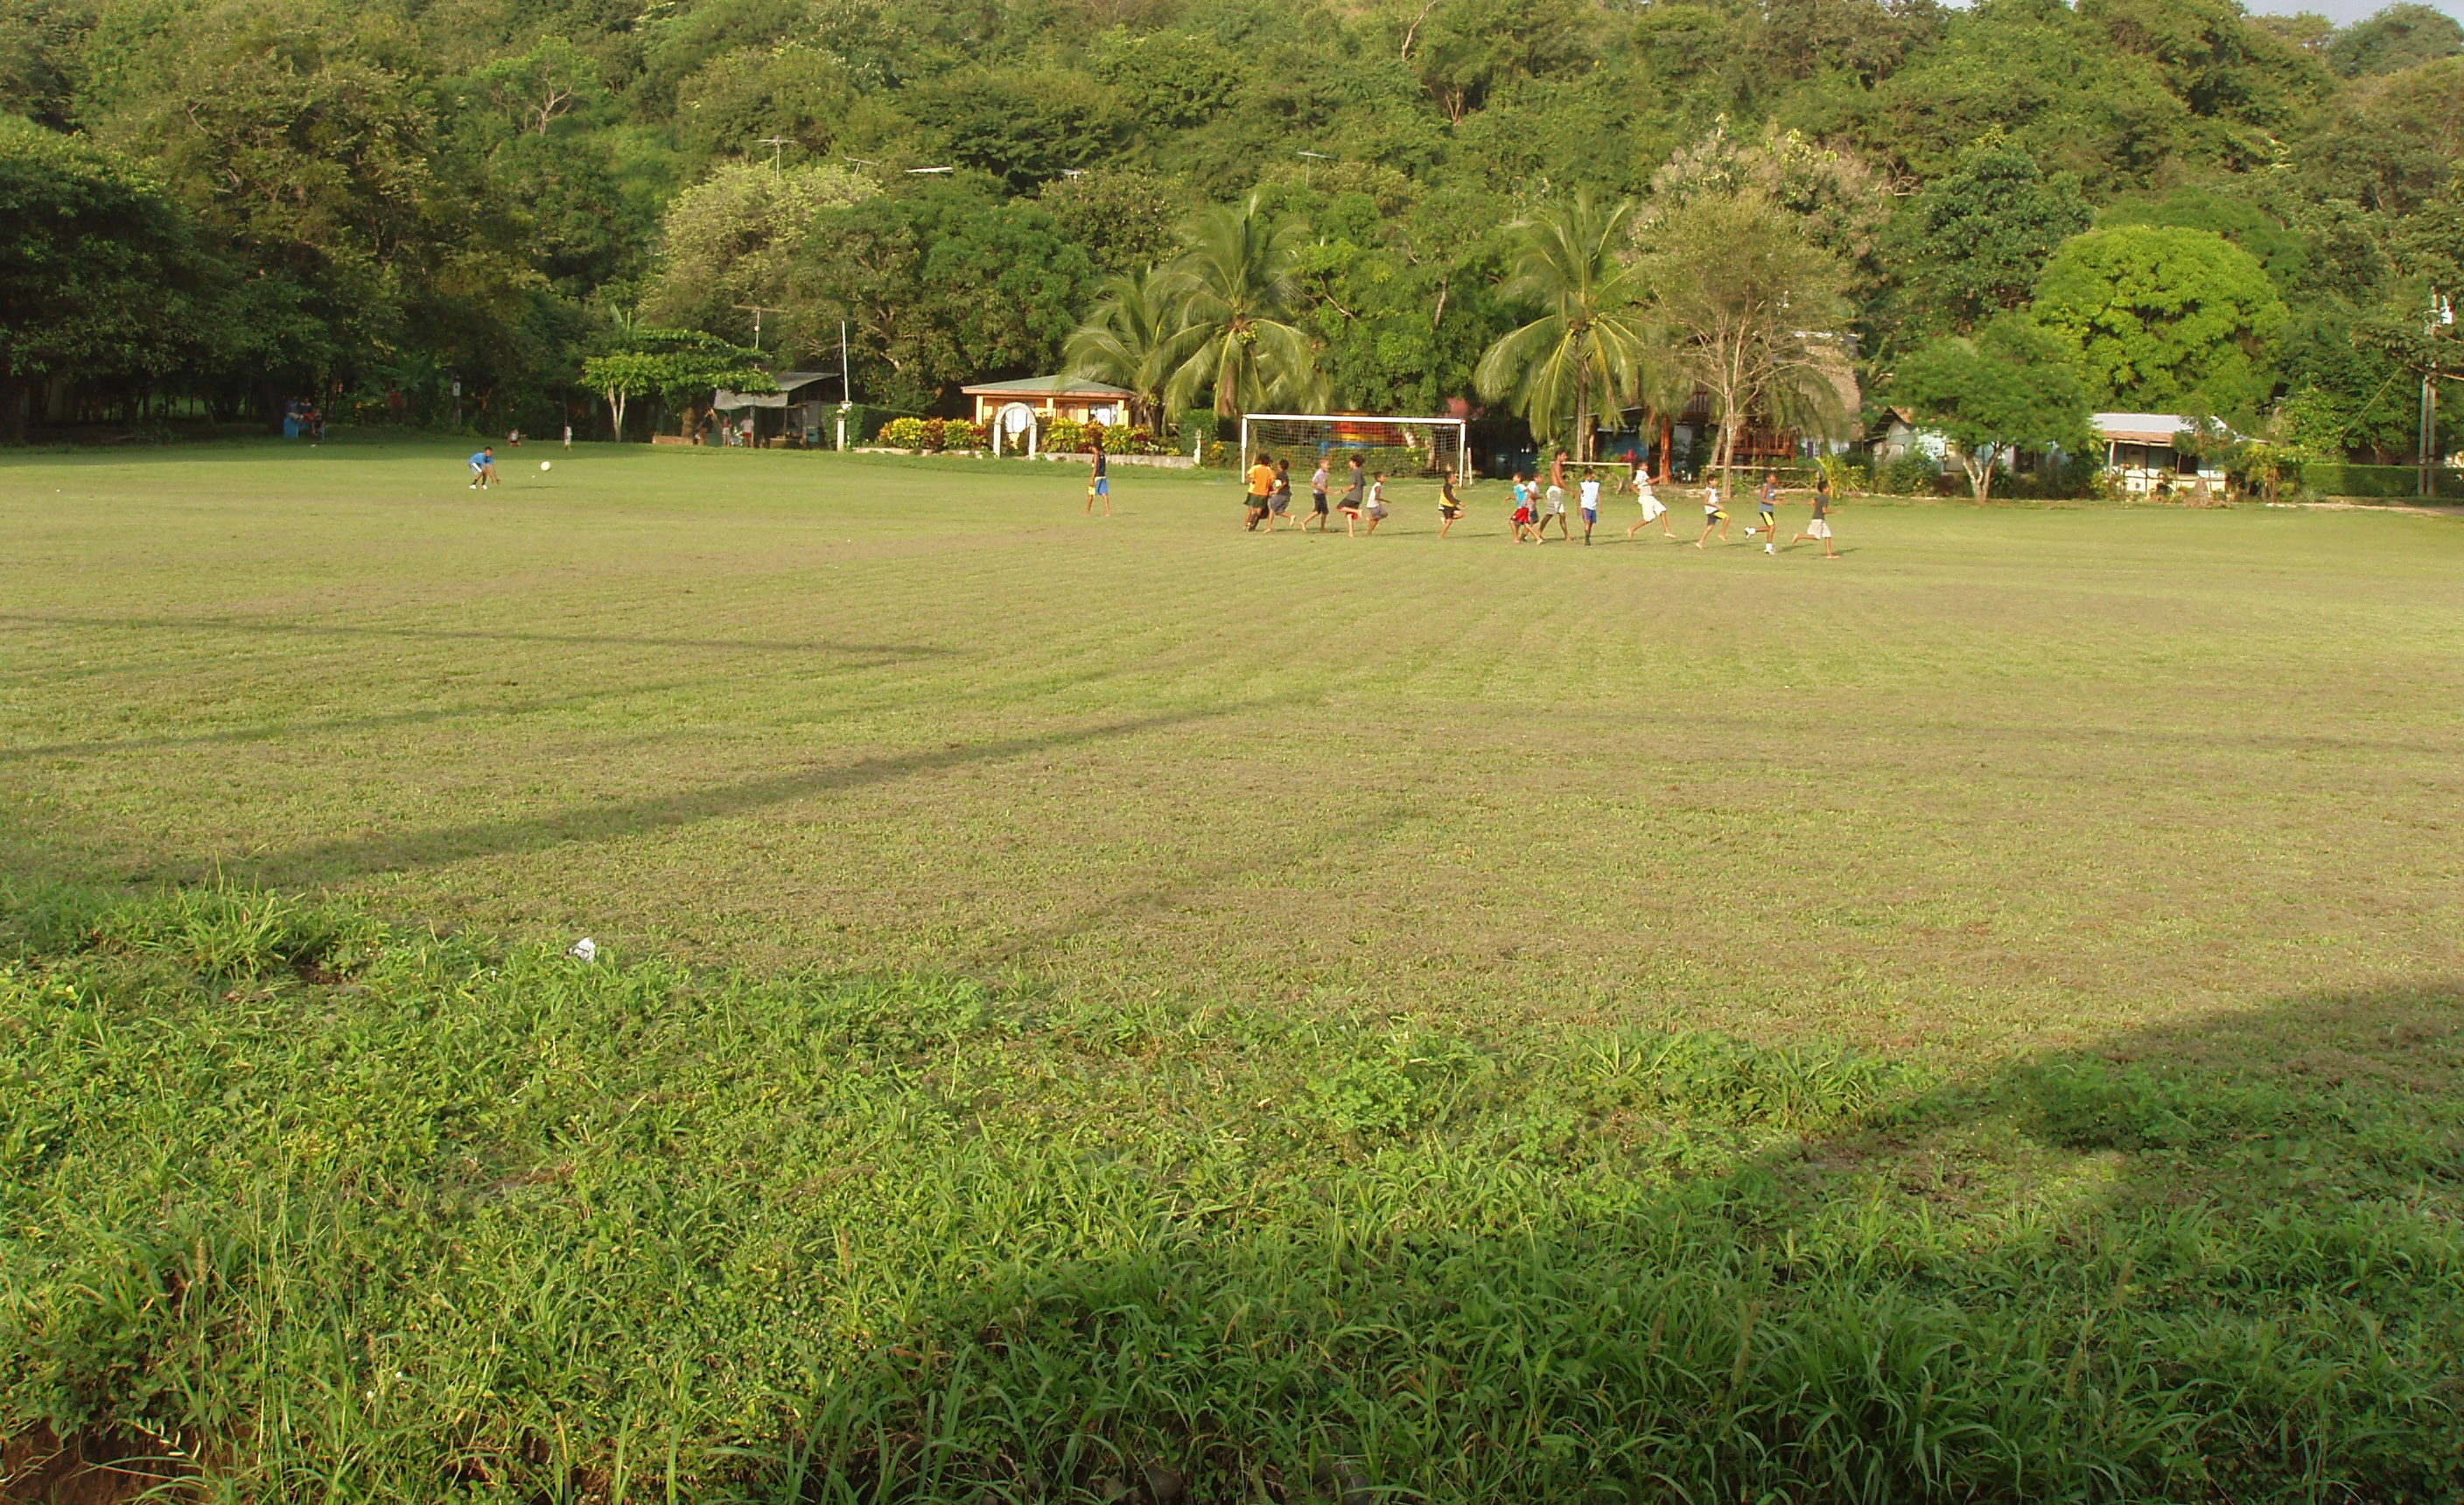 Kids playing in the Marbella Costa Rica soccer field